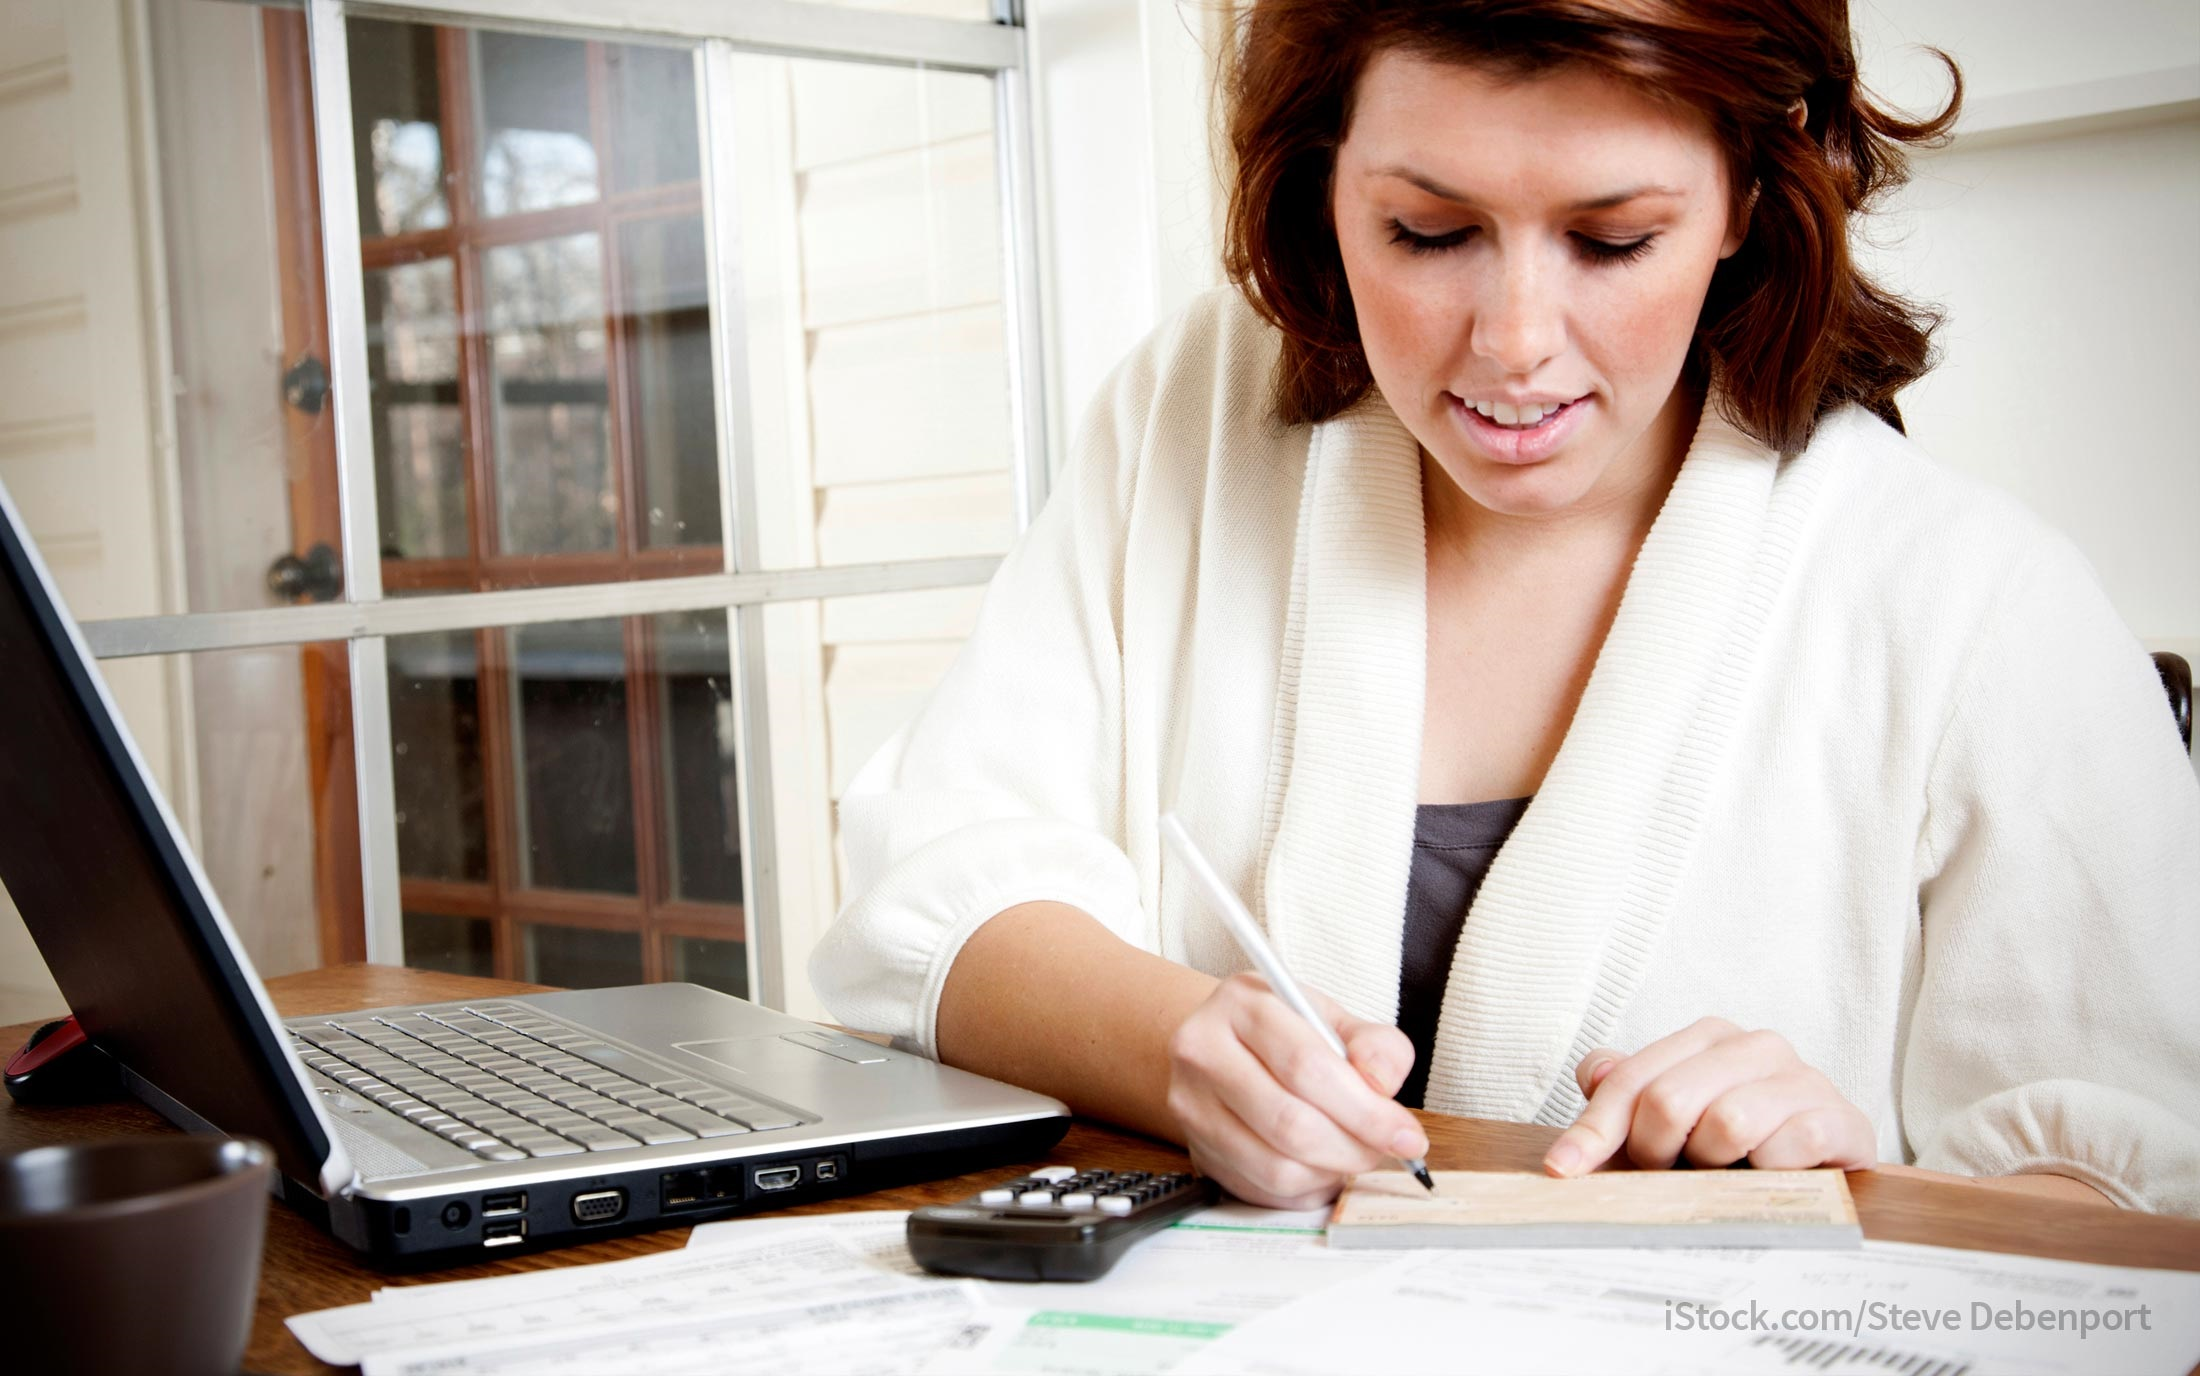 women writing check to save money on taxes